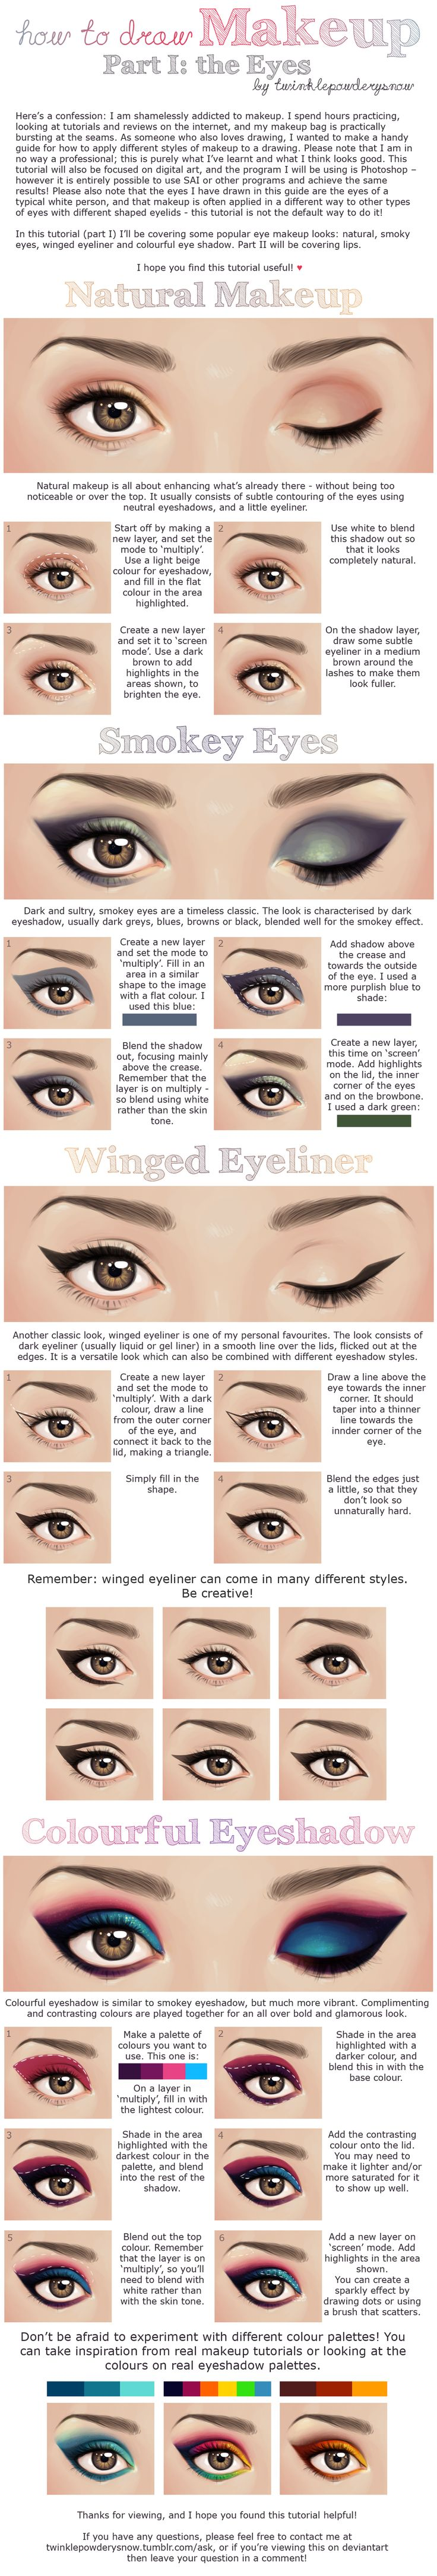 How to Draw Makeup - Part I: Eyes by TwinklePowderySnow on